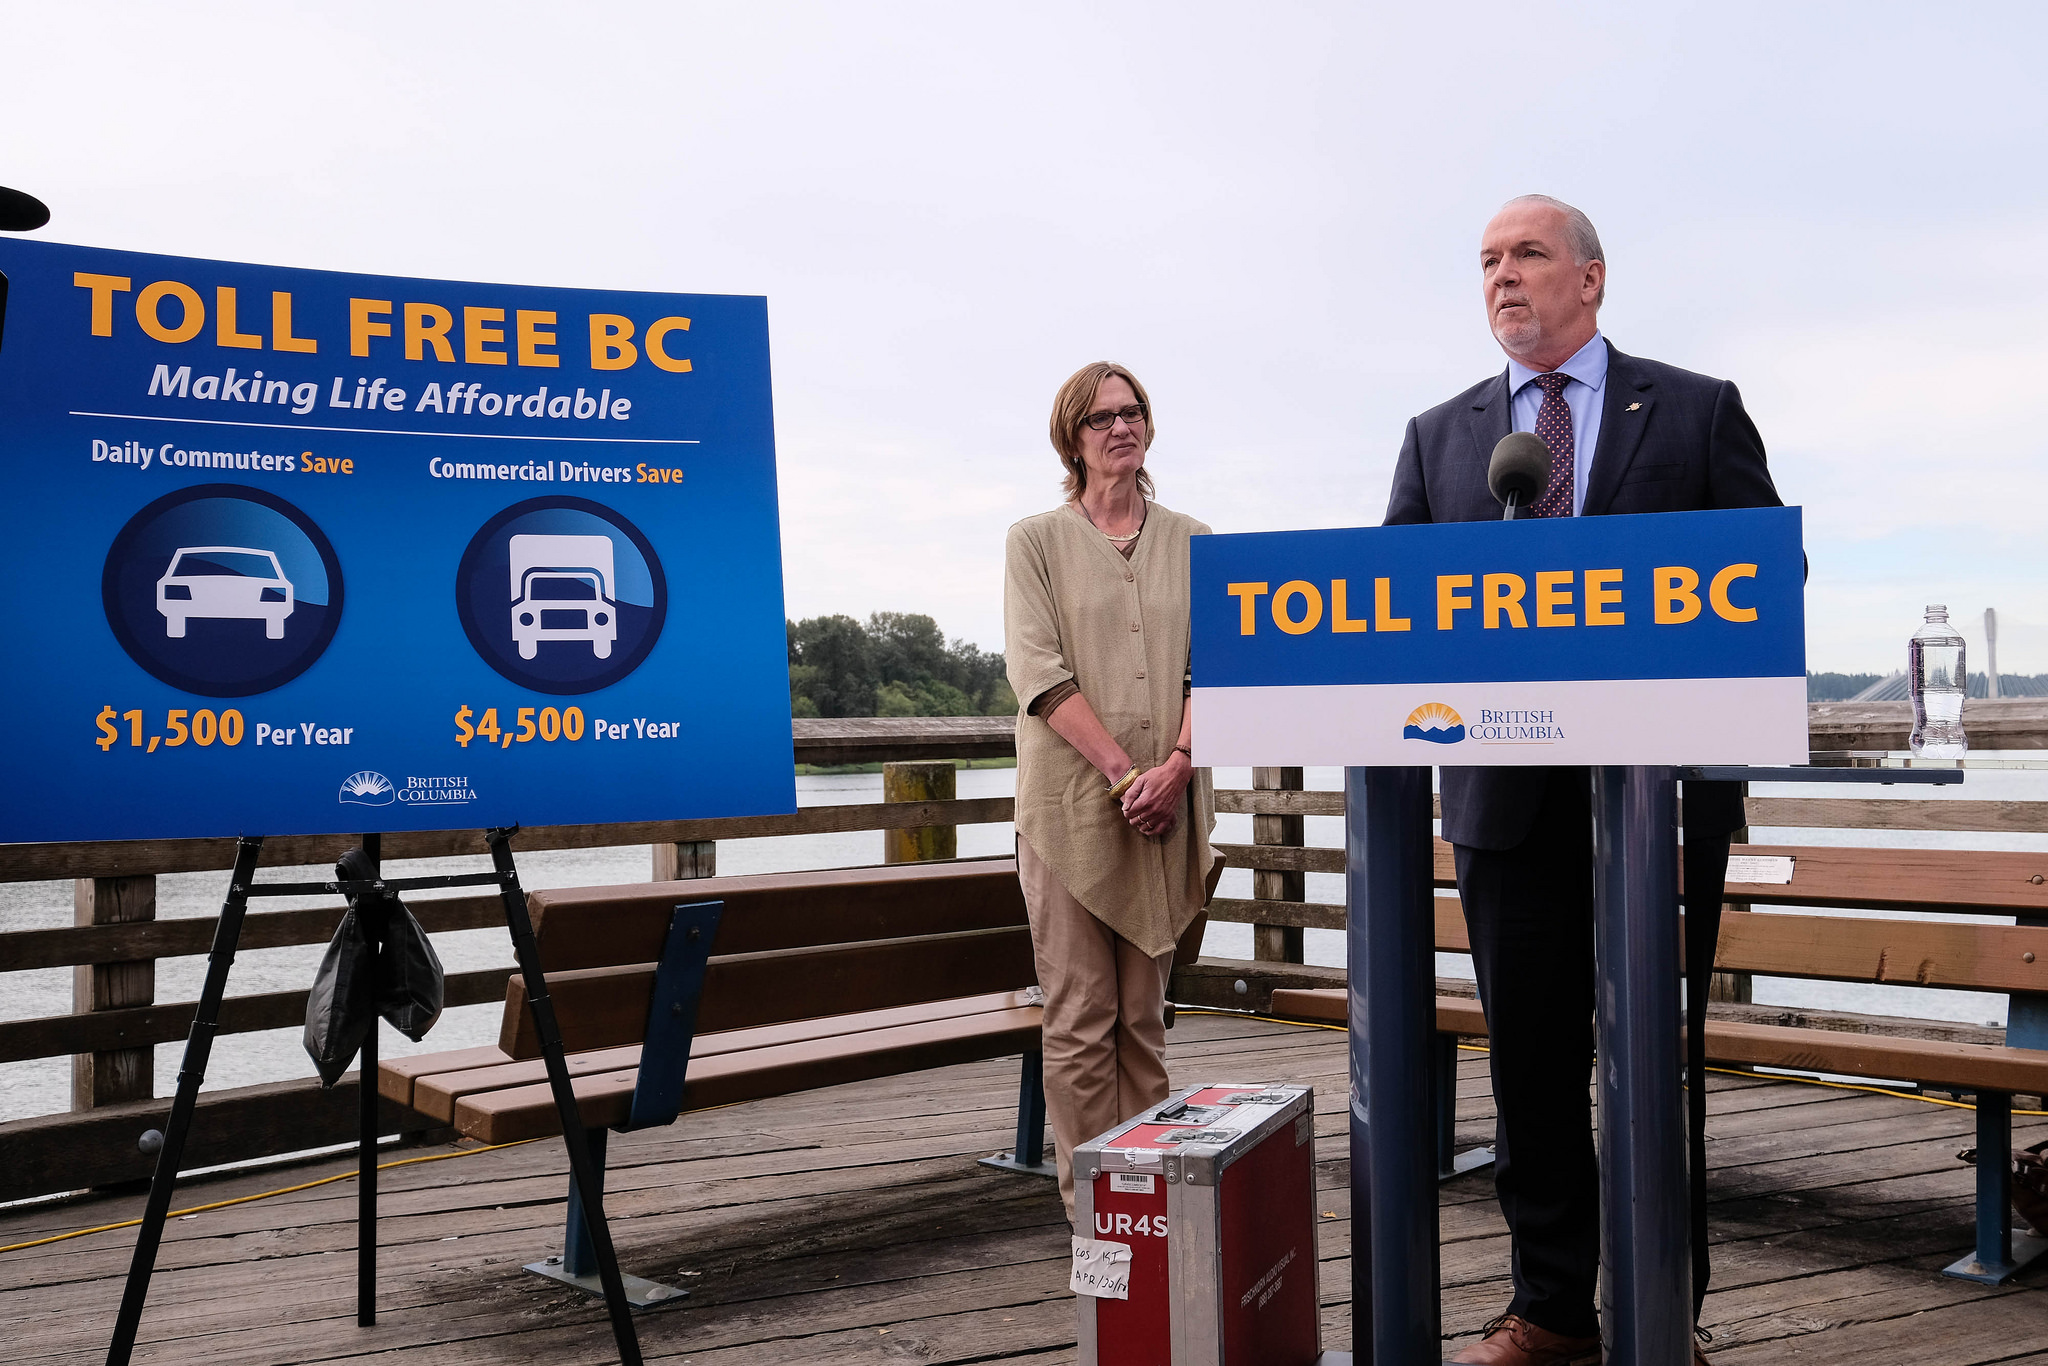 Premier John Horgan and Transportation Minister Claire Trevena